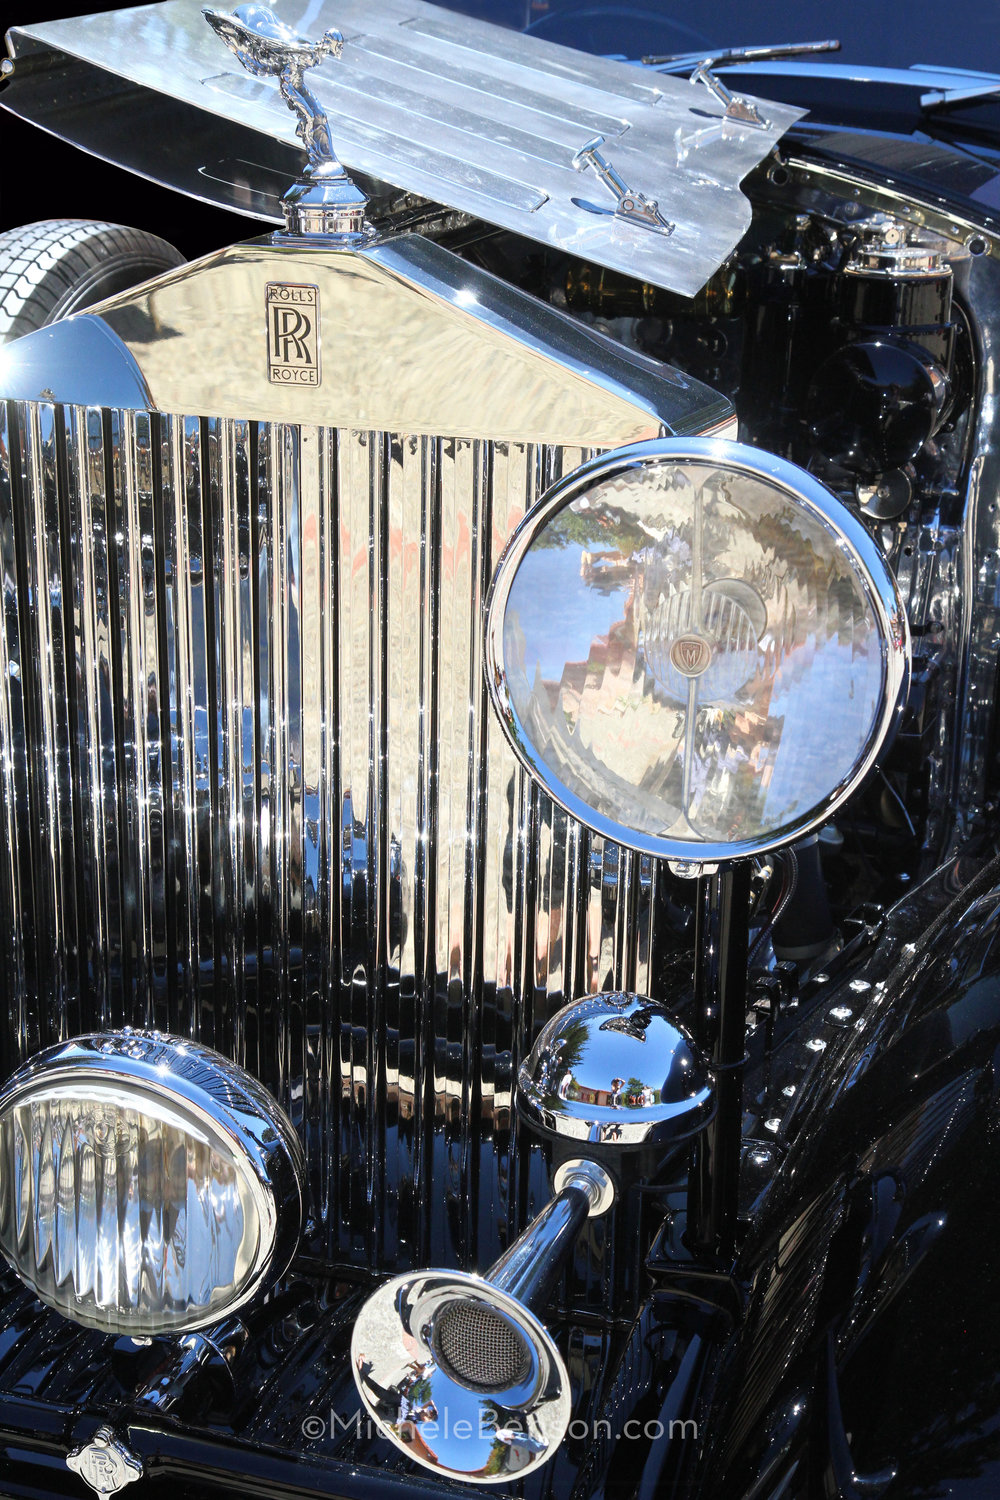 1930 Rolls Royce P1 Windblown Coupe Carmel, California 2015